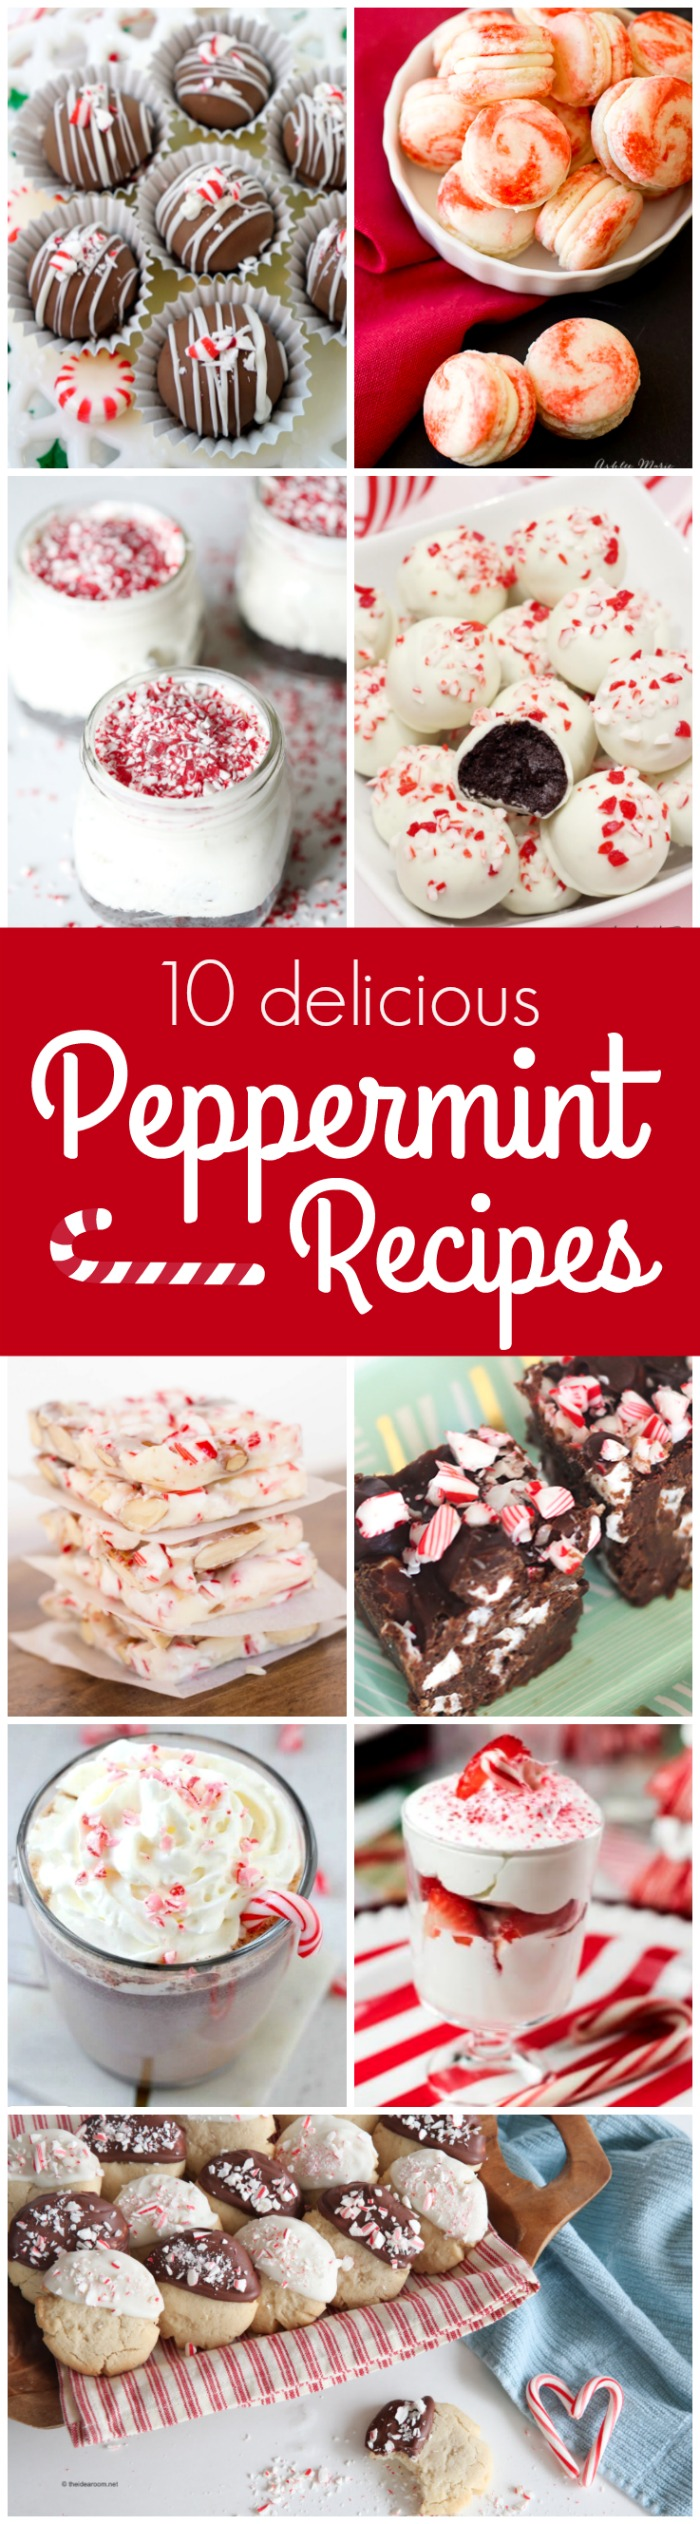 10-peppermint-recipe